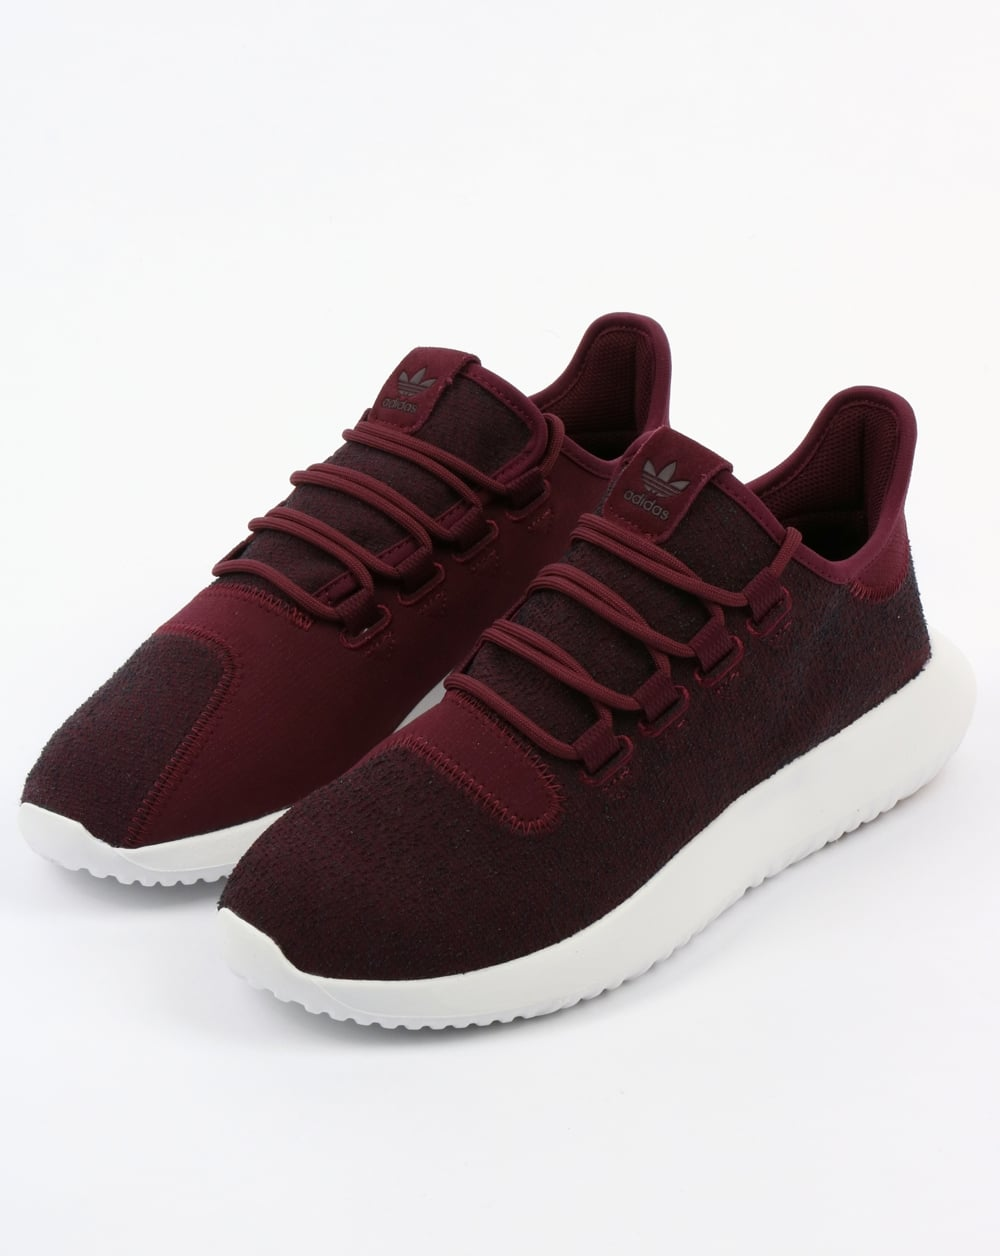 buy popular fc47e b4fdd Adidas Tubular Shadow Trainers Maroon/Vapour Grey